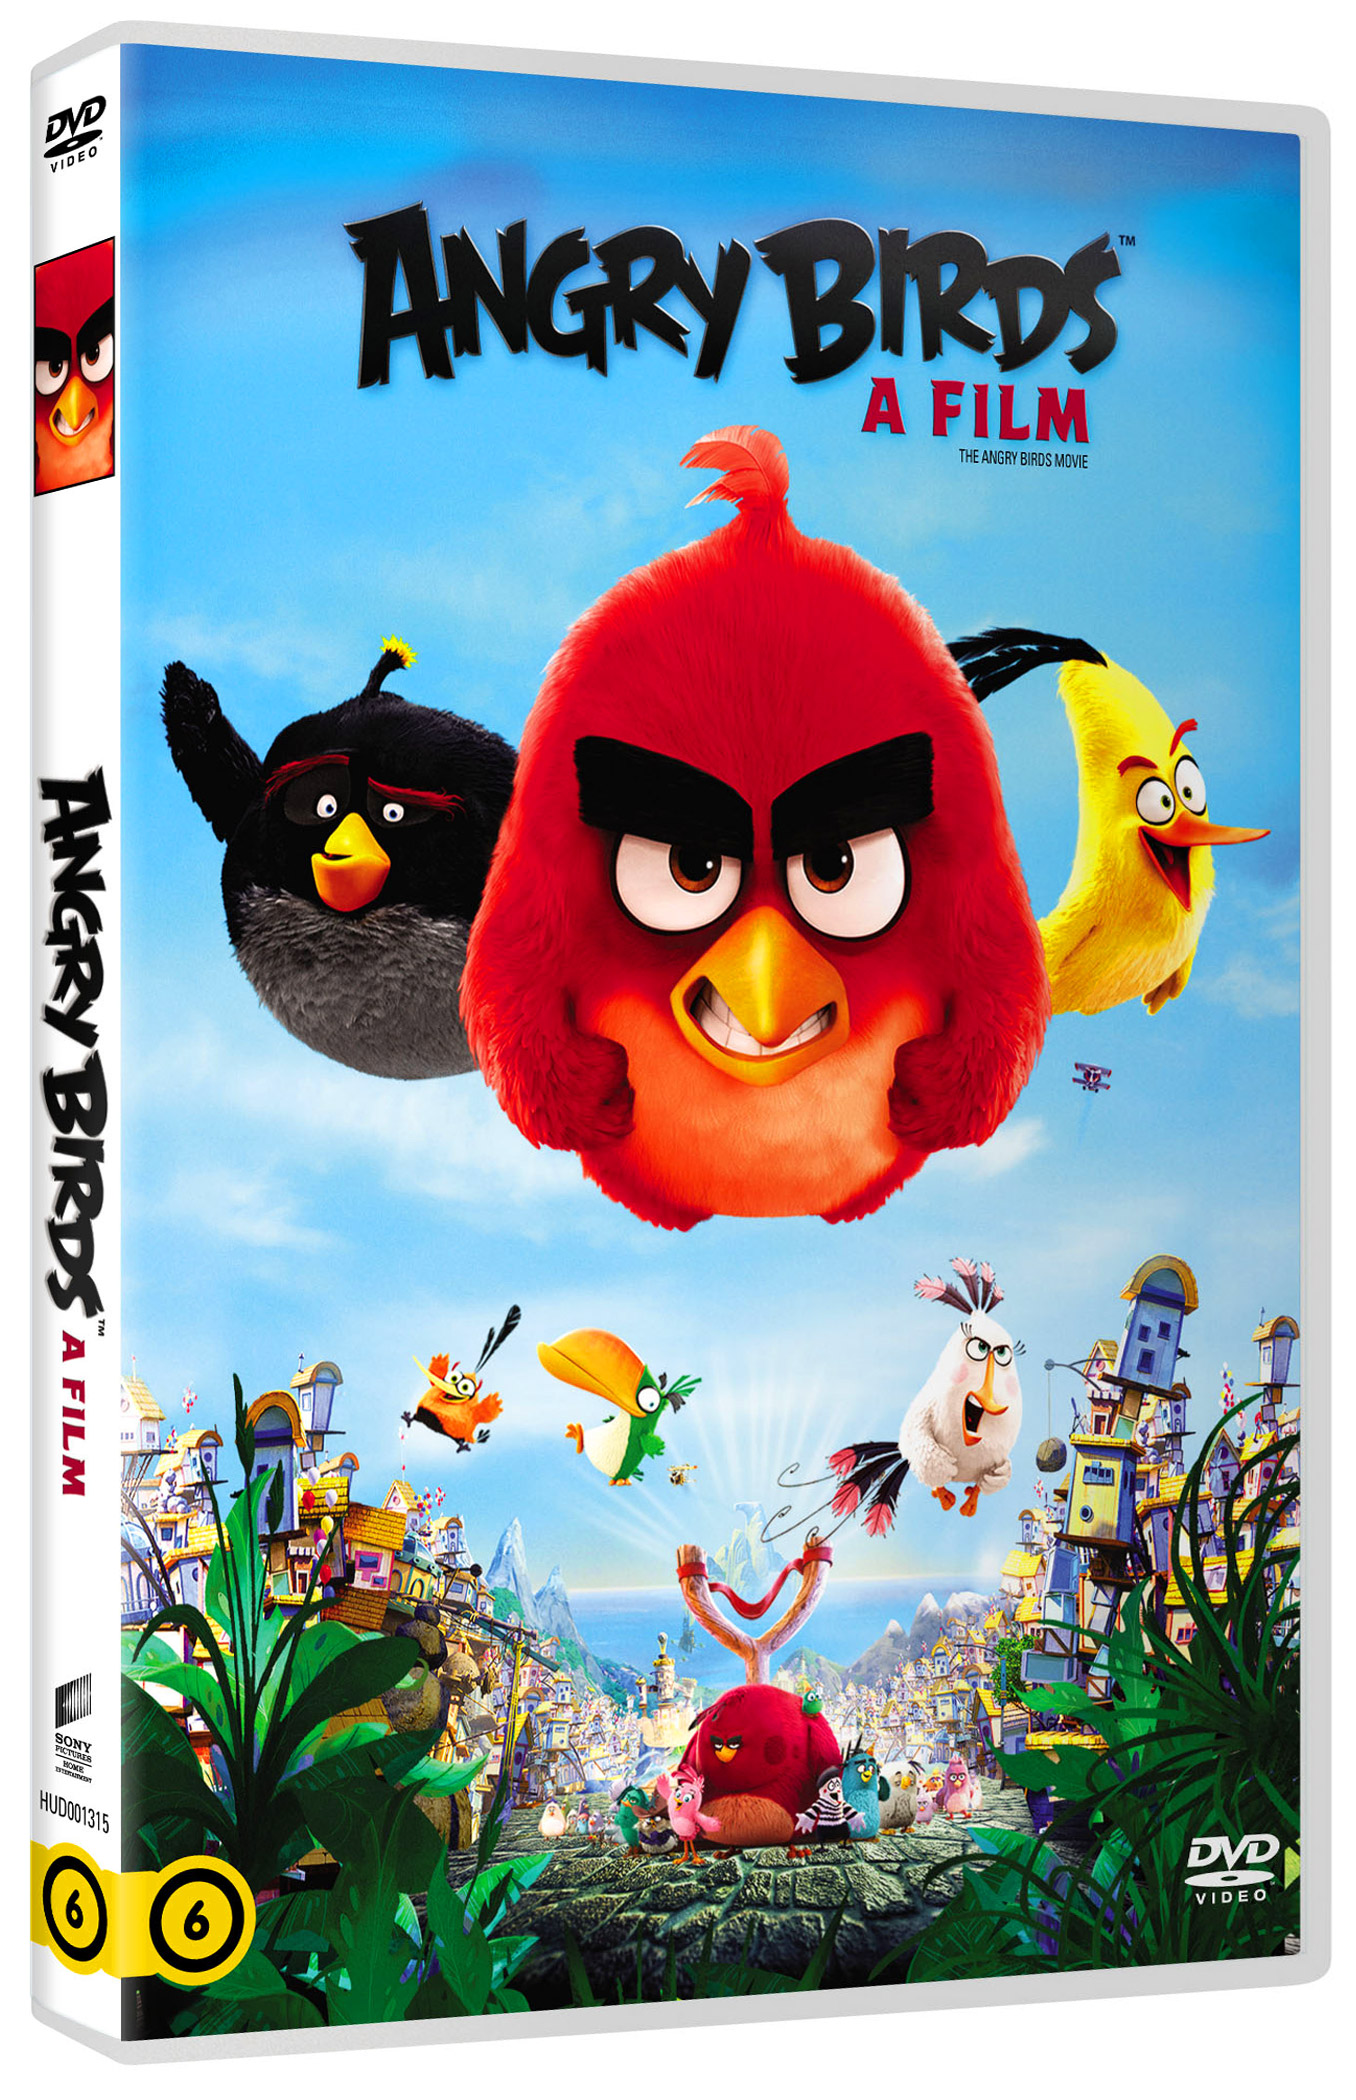 Angry Birds: A film DVD